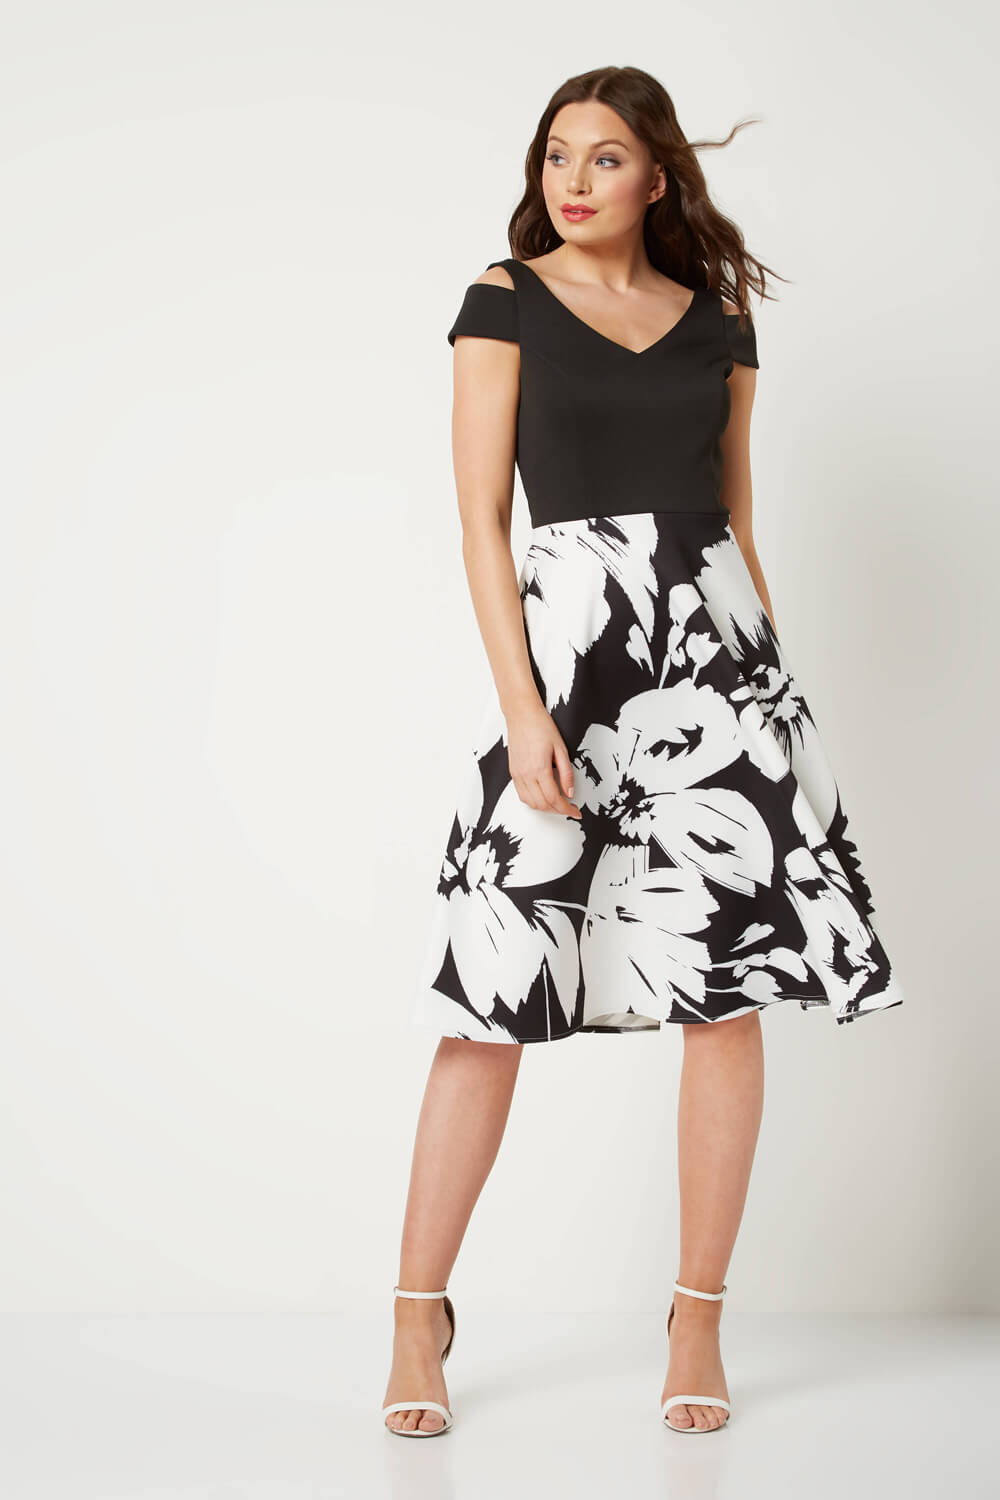 Roman-Originals-Women-039-s-Fit-and-Flare-Floral-Scuba-Dress-Sizes-10-20 thumbnail 8